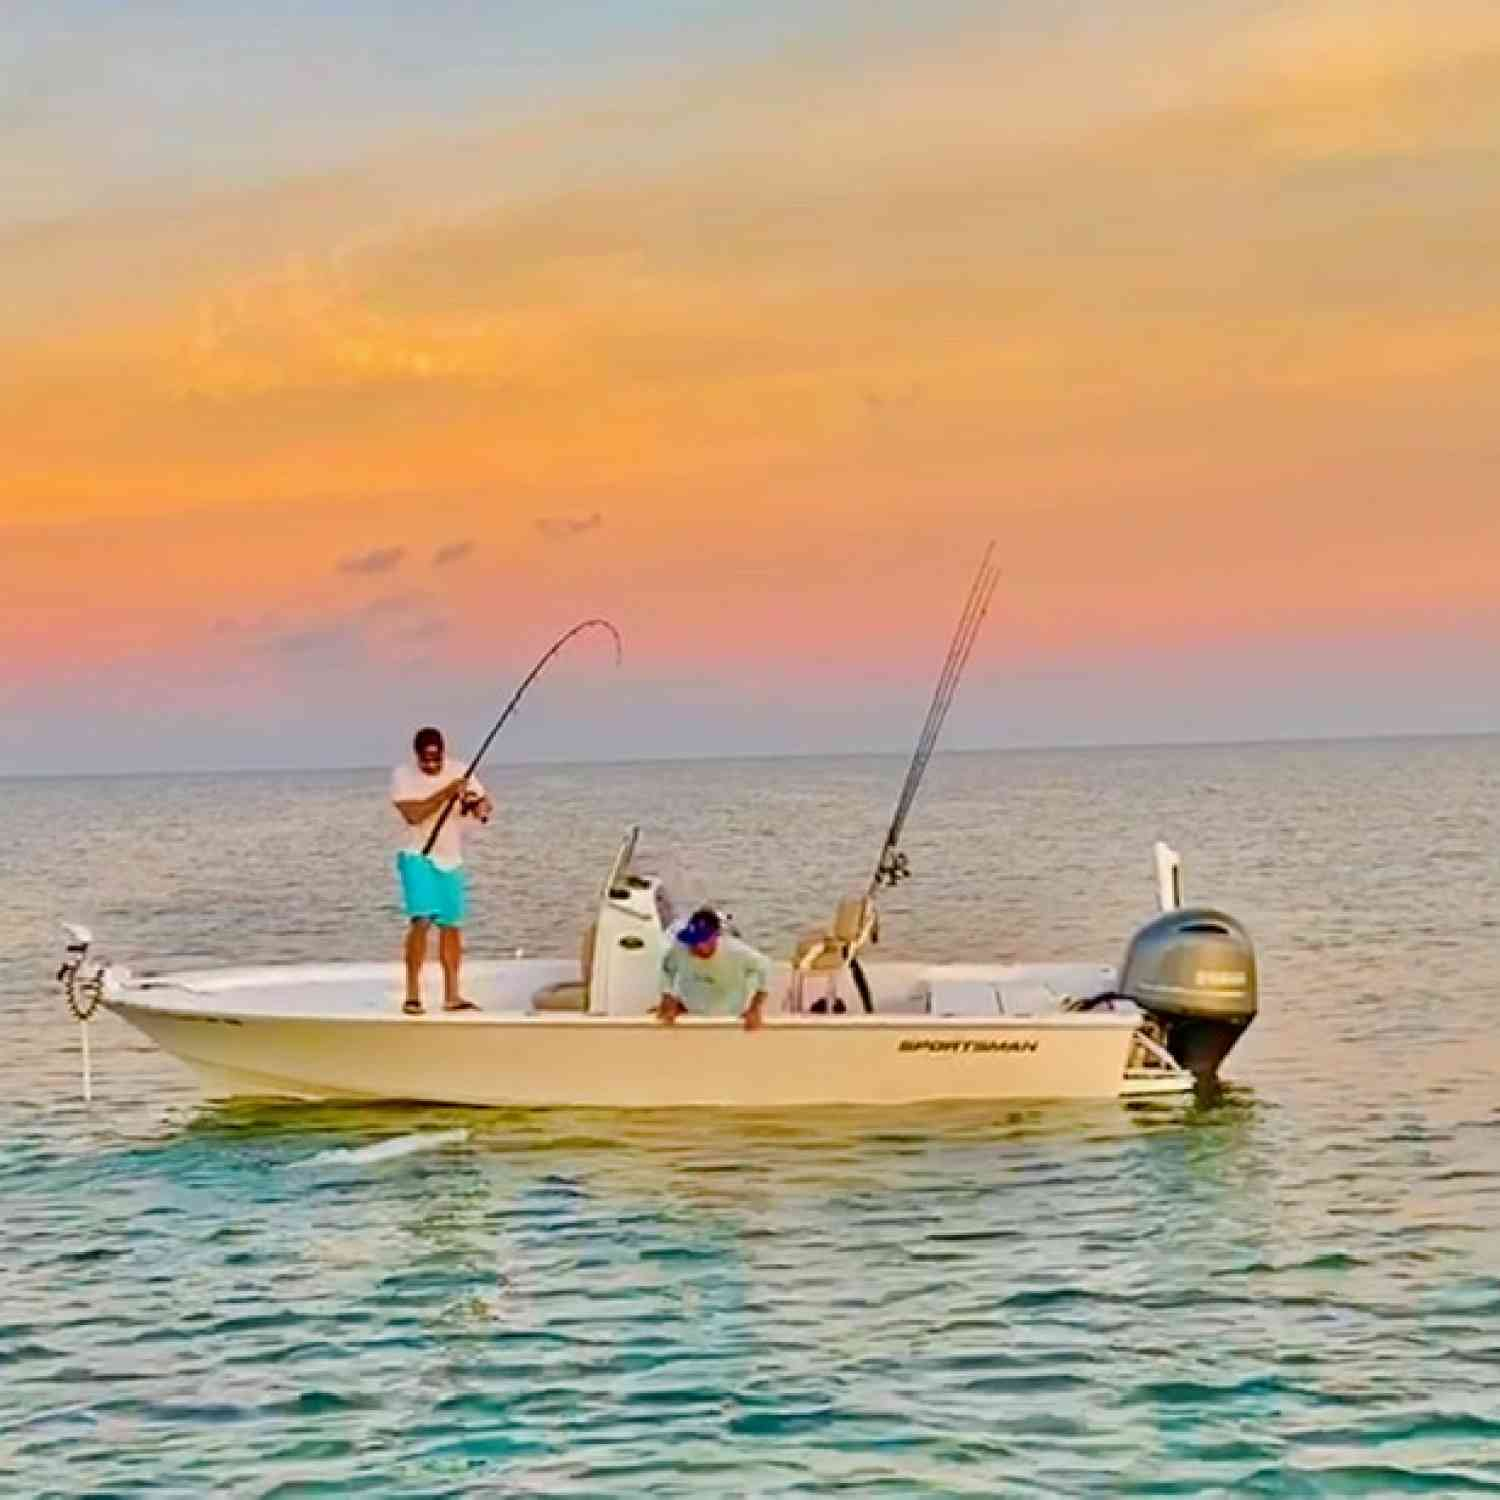 Title: Tarpon on the beach - On board their Sportsman Masters 227 Bay Boat - Location: St. Petersburg. Participating in the Photo Contest #SportsmanJune2020